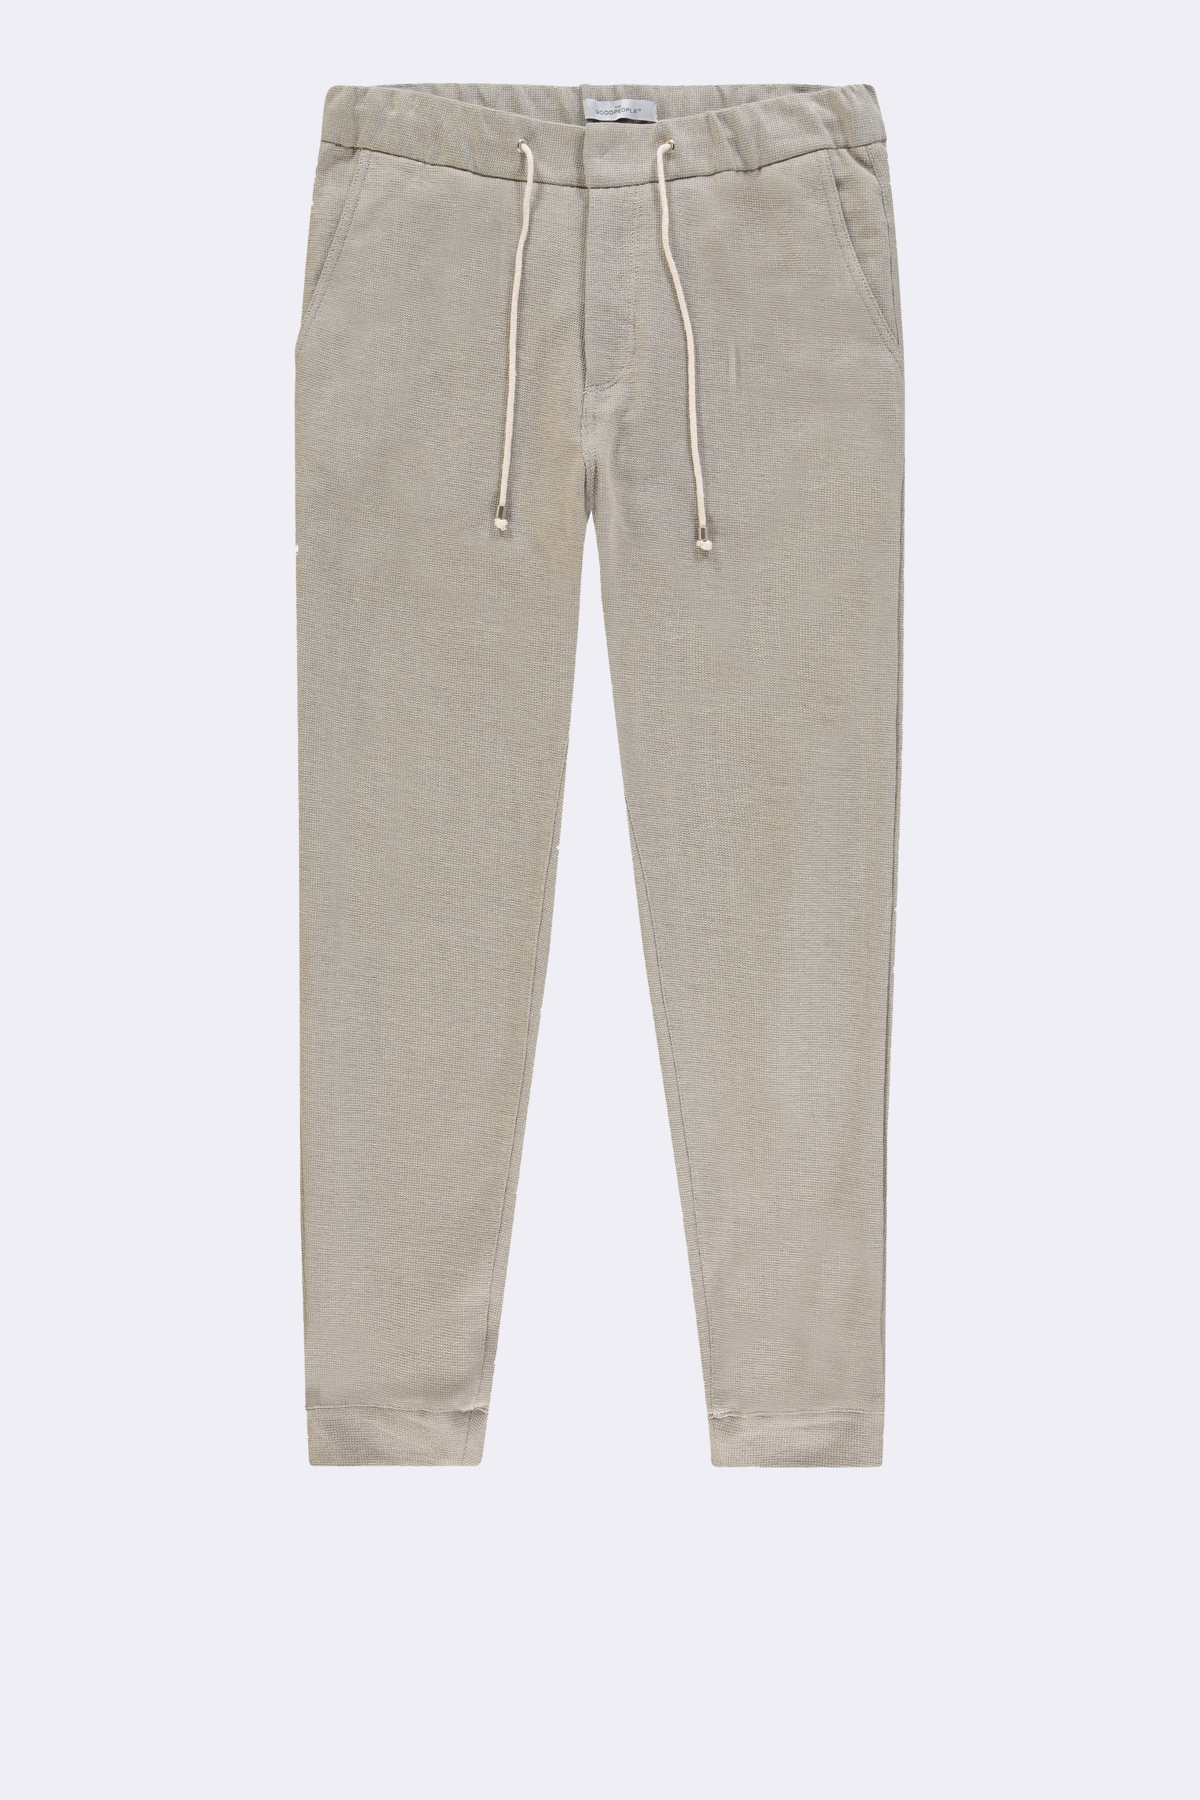 The Good People - Fute - TAPERED TROUSERS JOGGER DETAILS